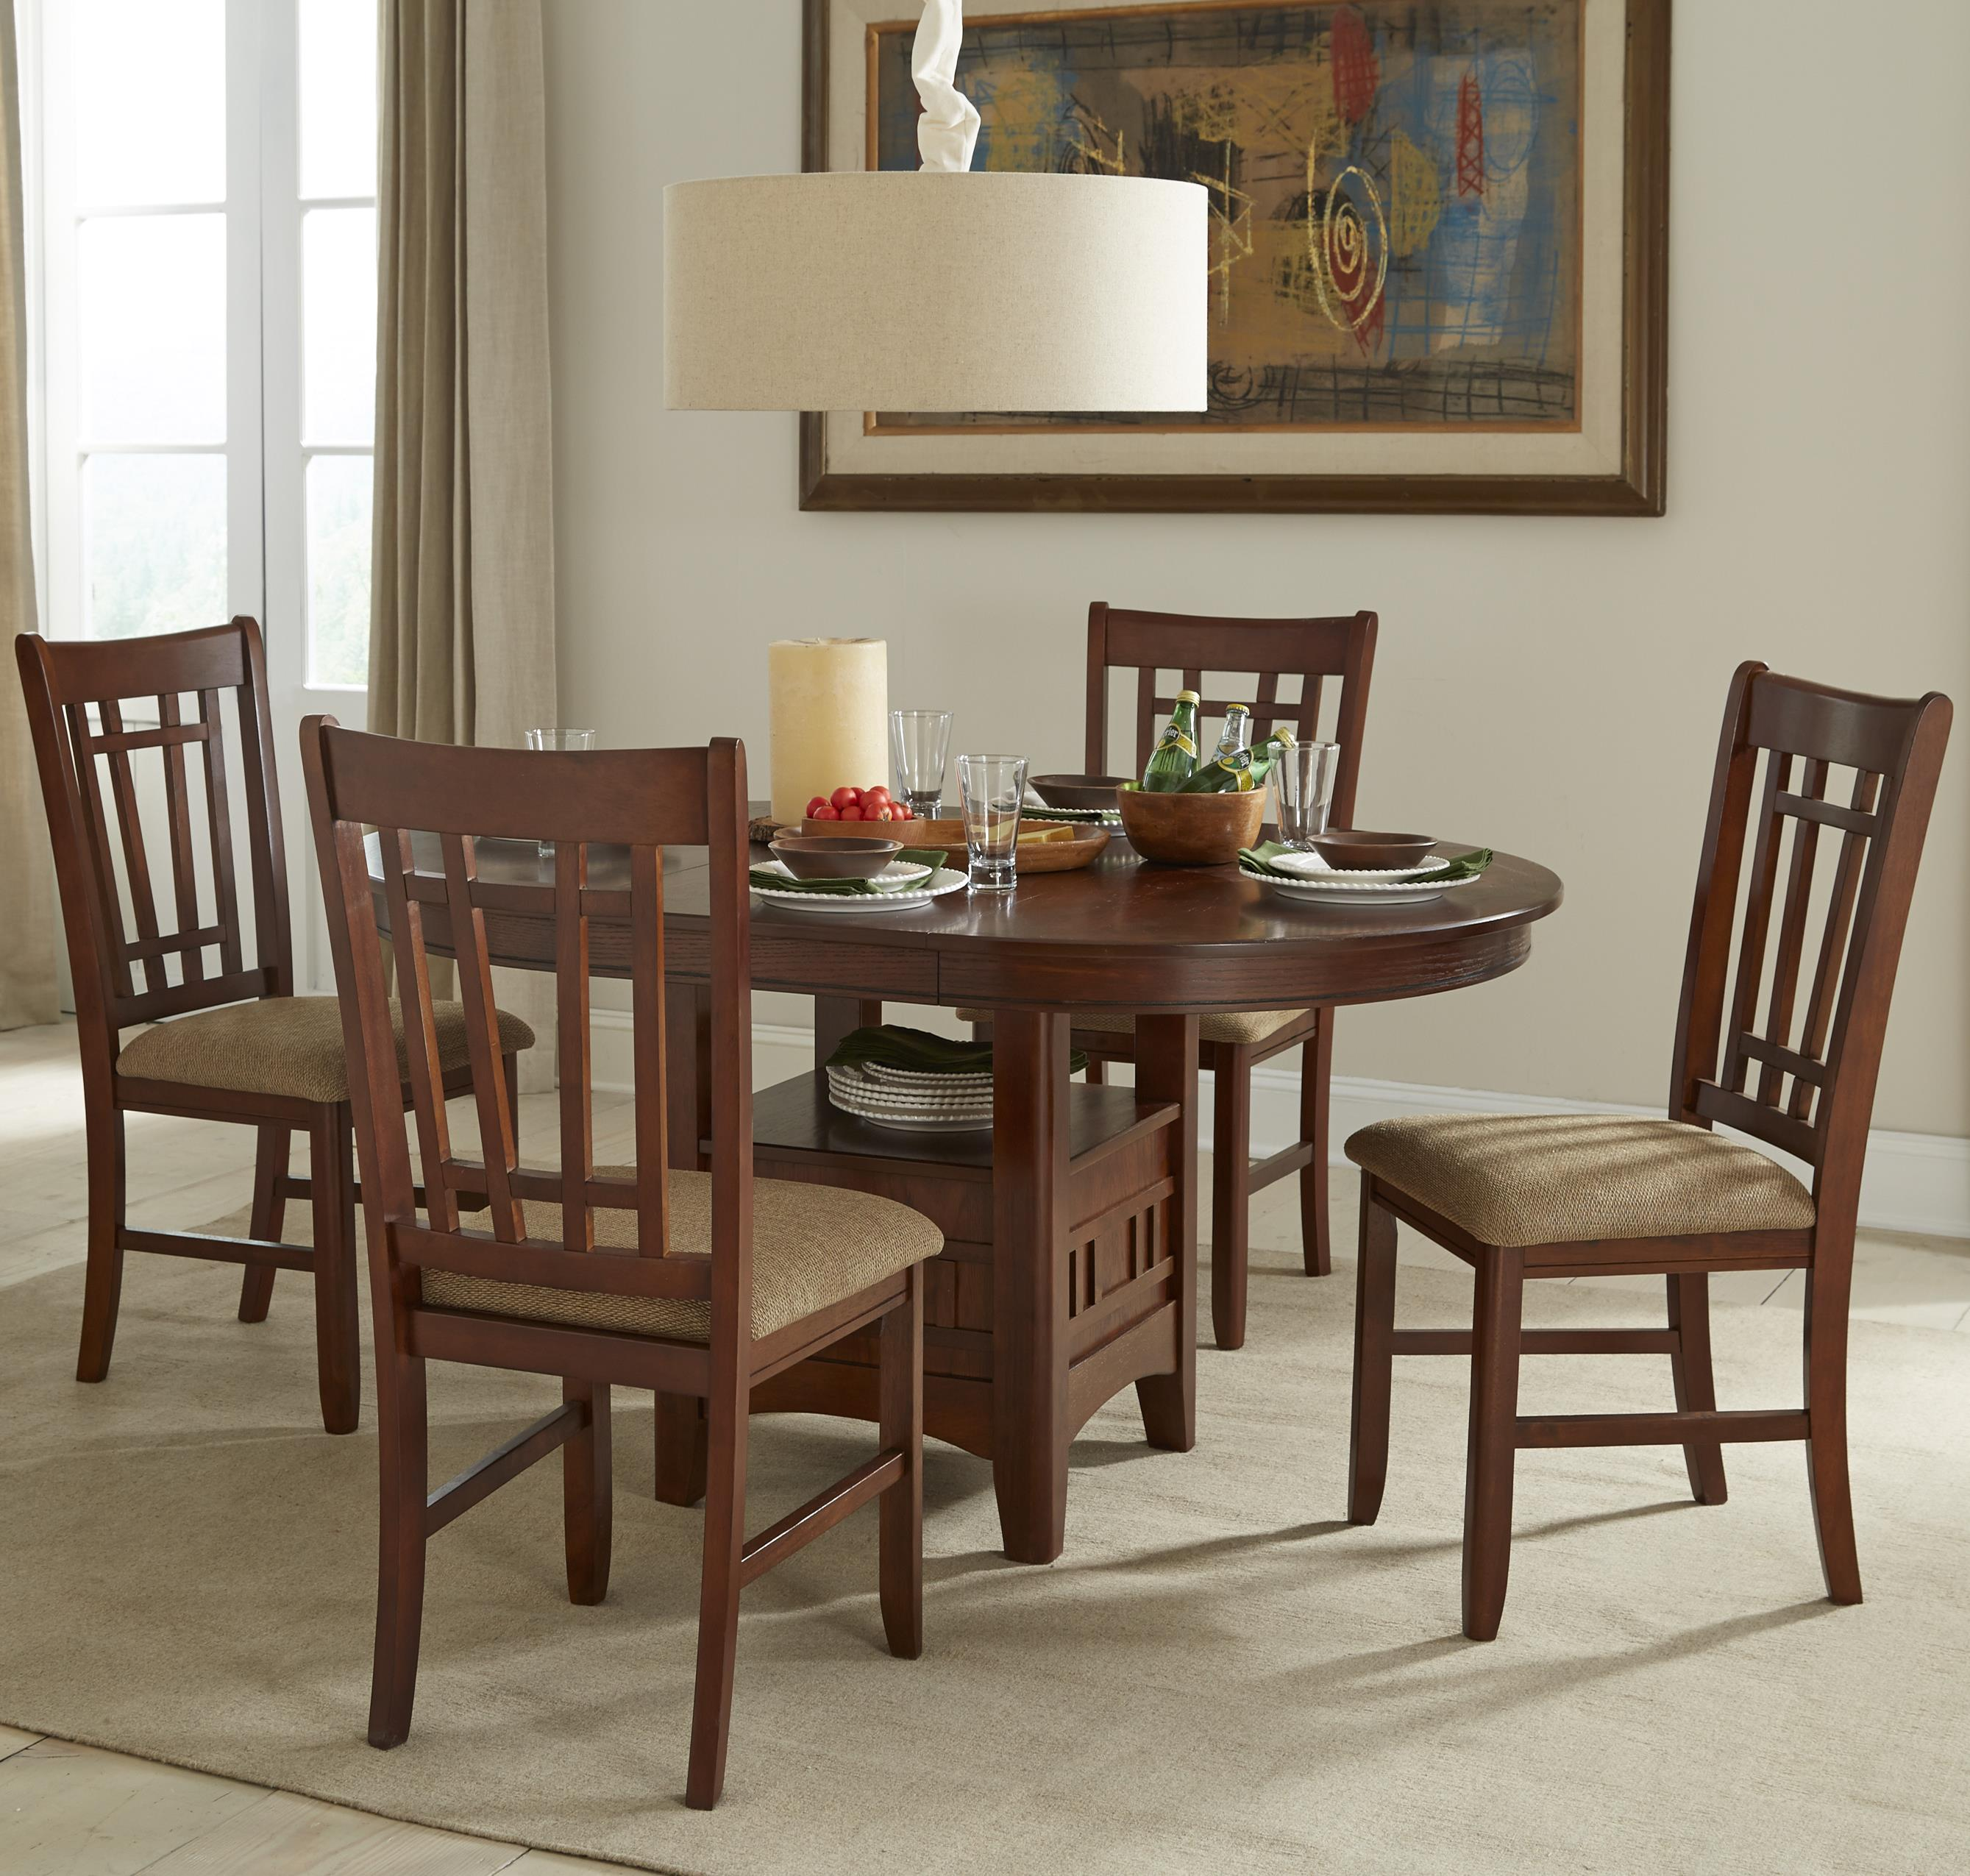 breakfast table and chairs set stool chair for bar oval dining with cushioned side by